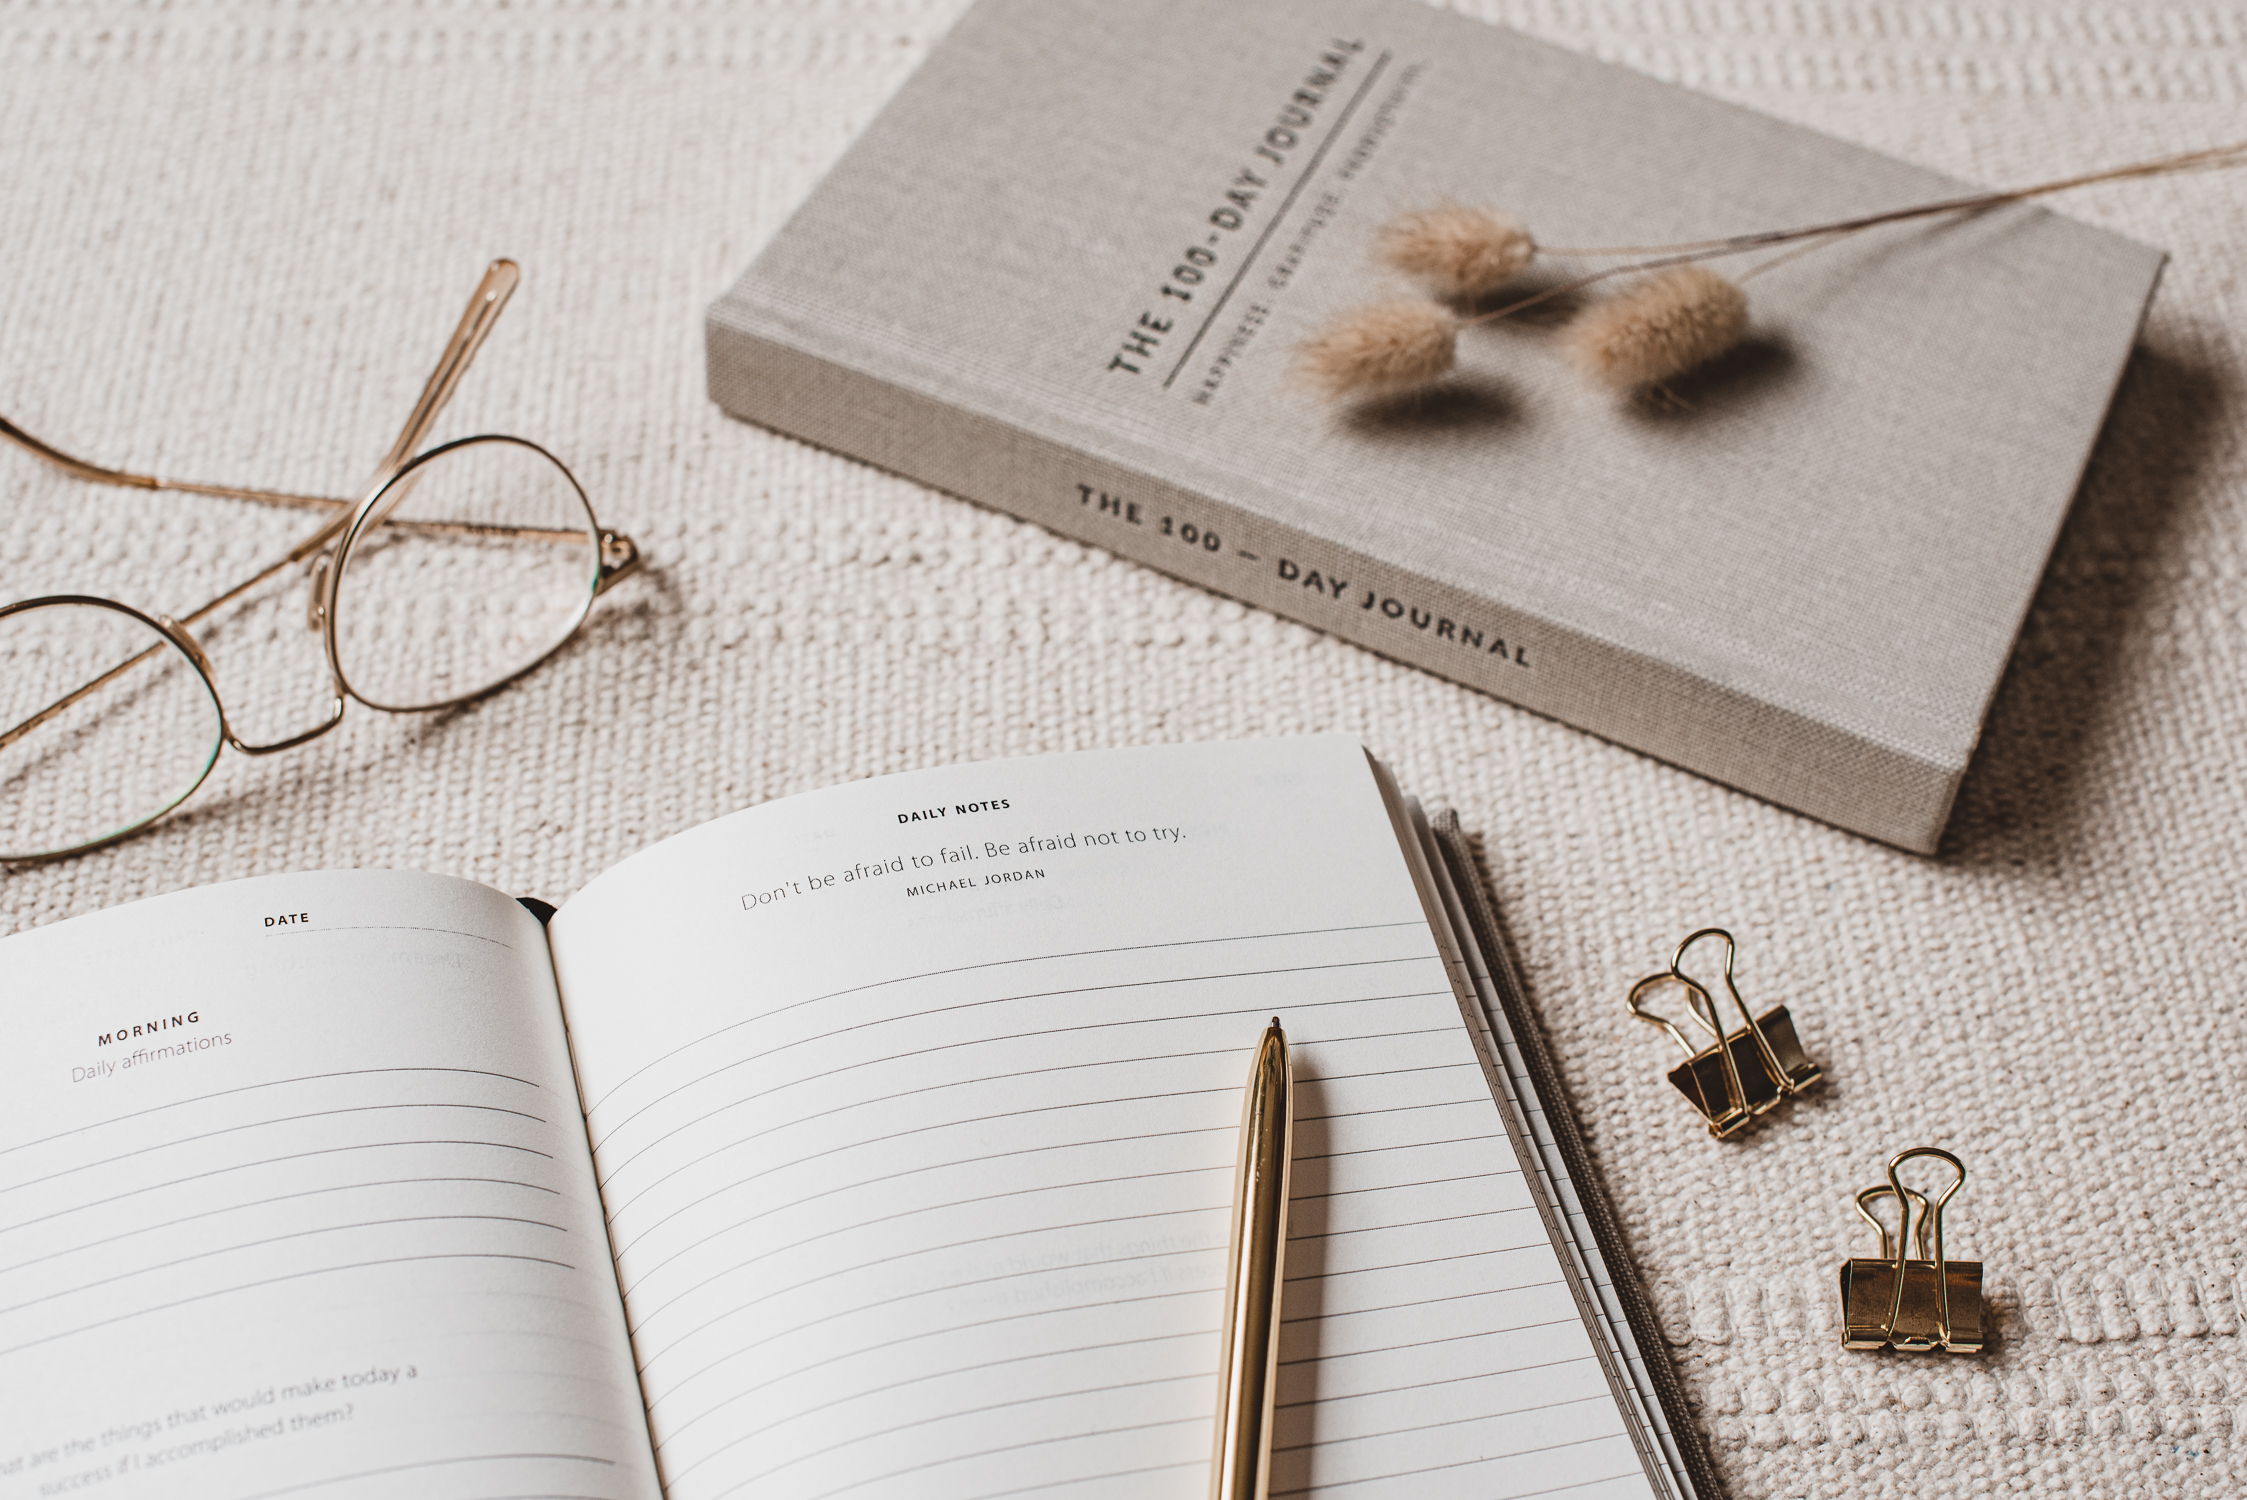 The 100 day journal - ByDenize